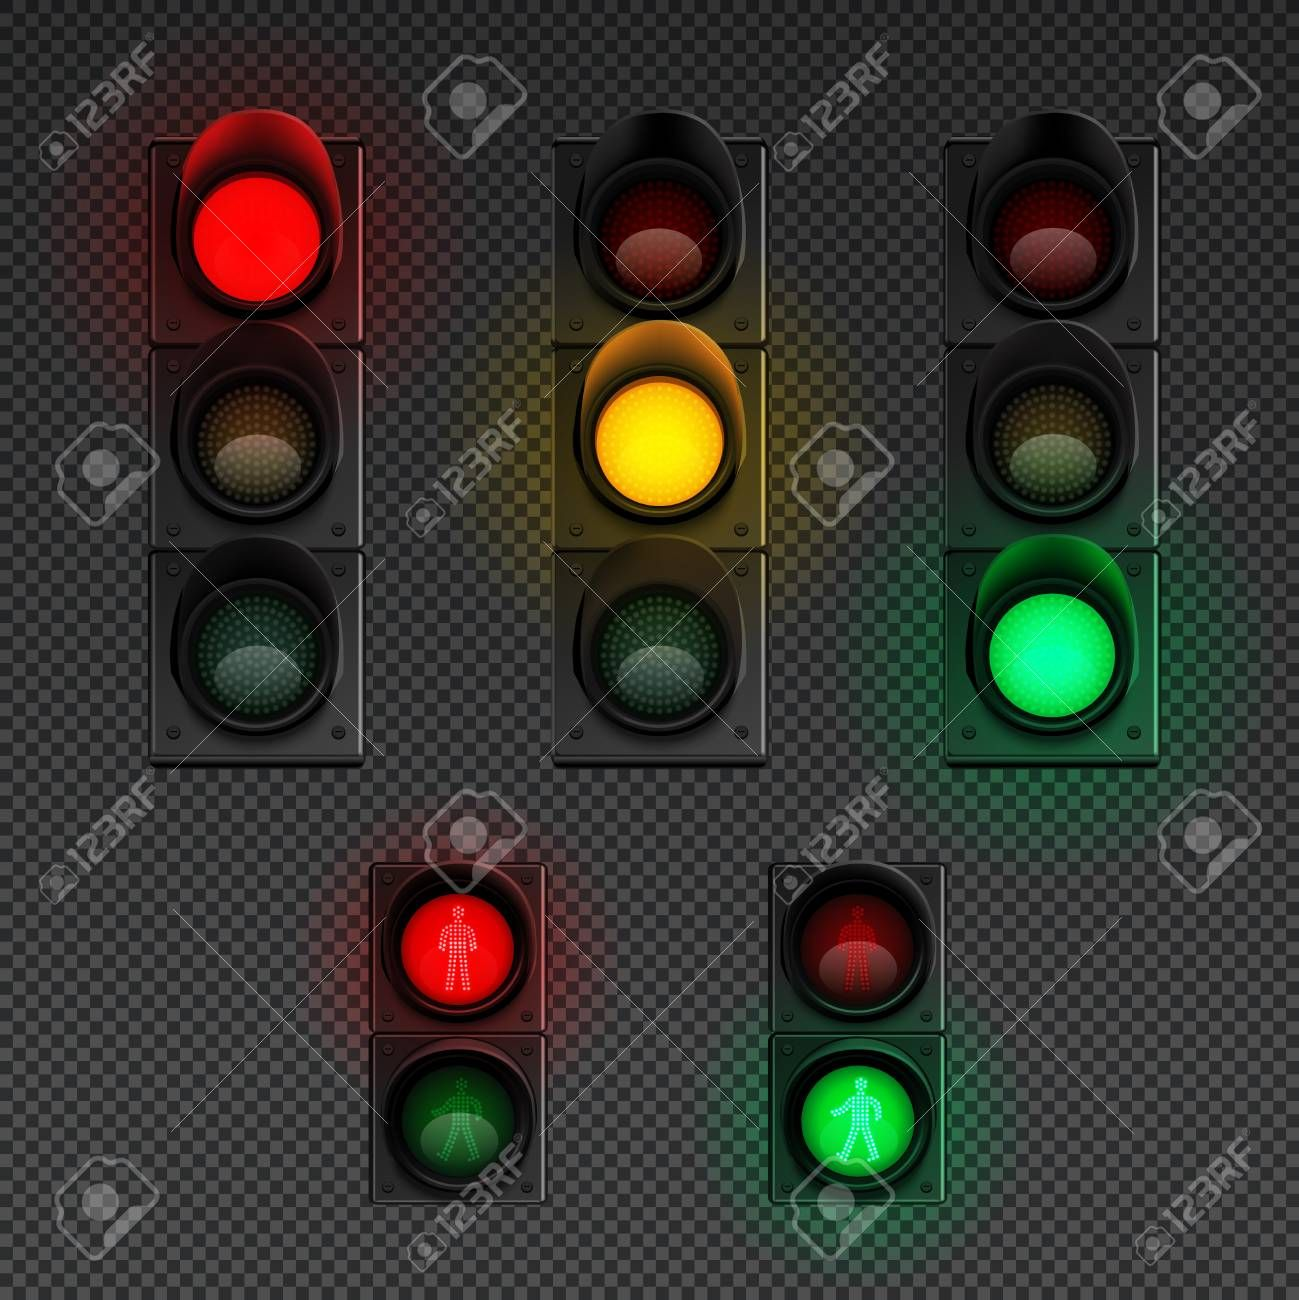 Traffic Lights Realistic Transparent Icon Set With Traffic Light For Pedestrians And Different Others Vector Illustration Traffic Light Light Icon Icon Set